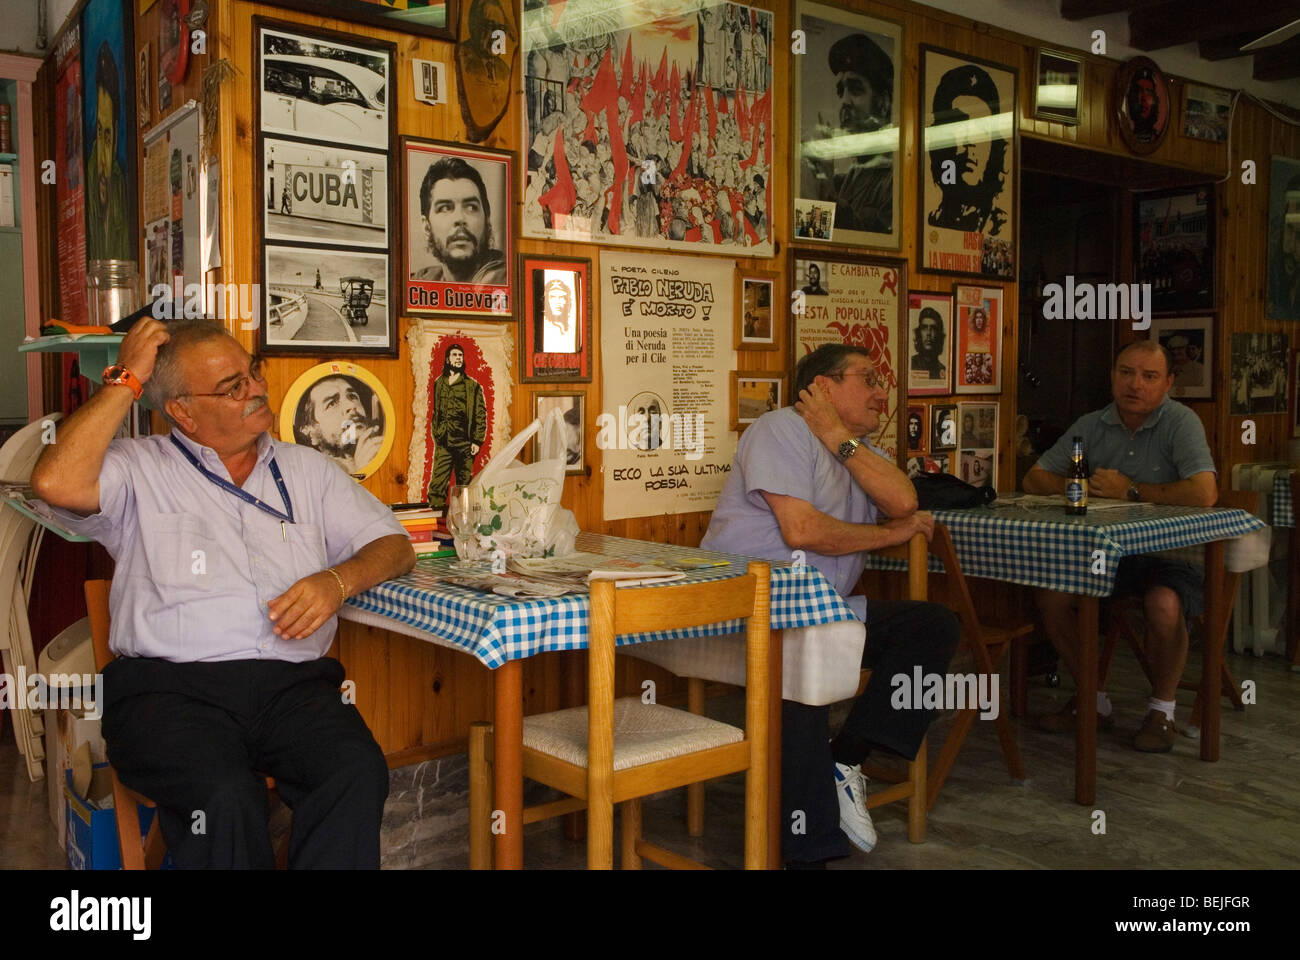 Venice Italy . Members of the Italian Communist Party in their cafe bar. - Stock Image